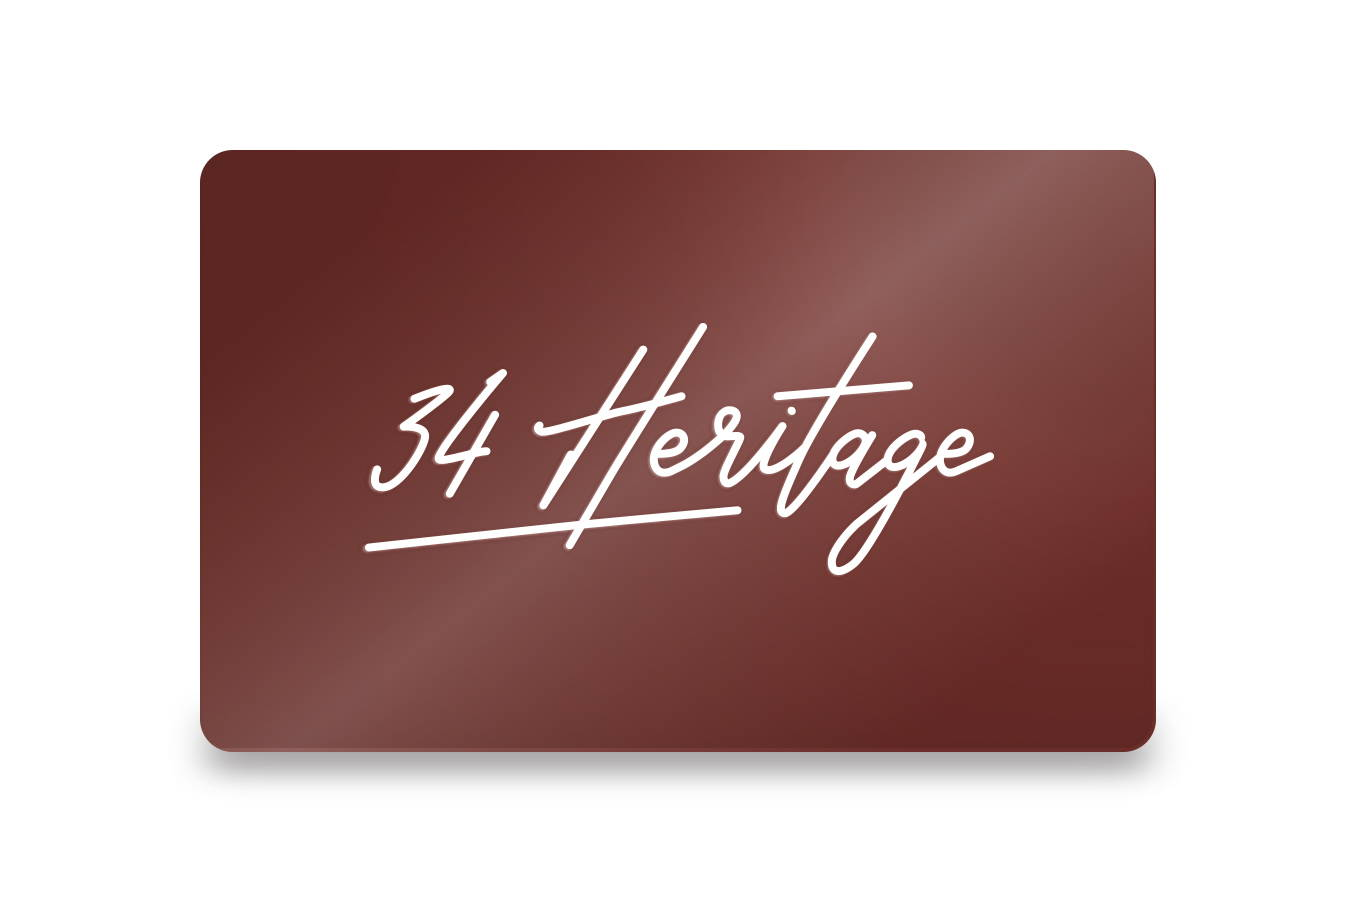 34 Heritage Gift Cards